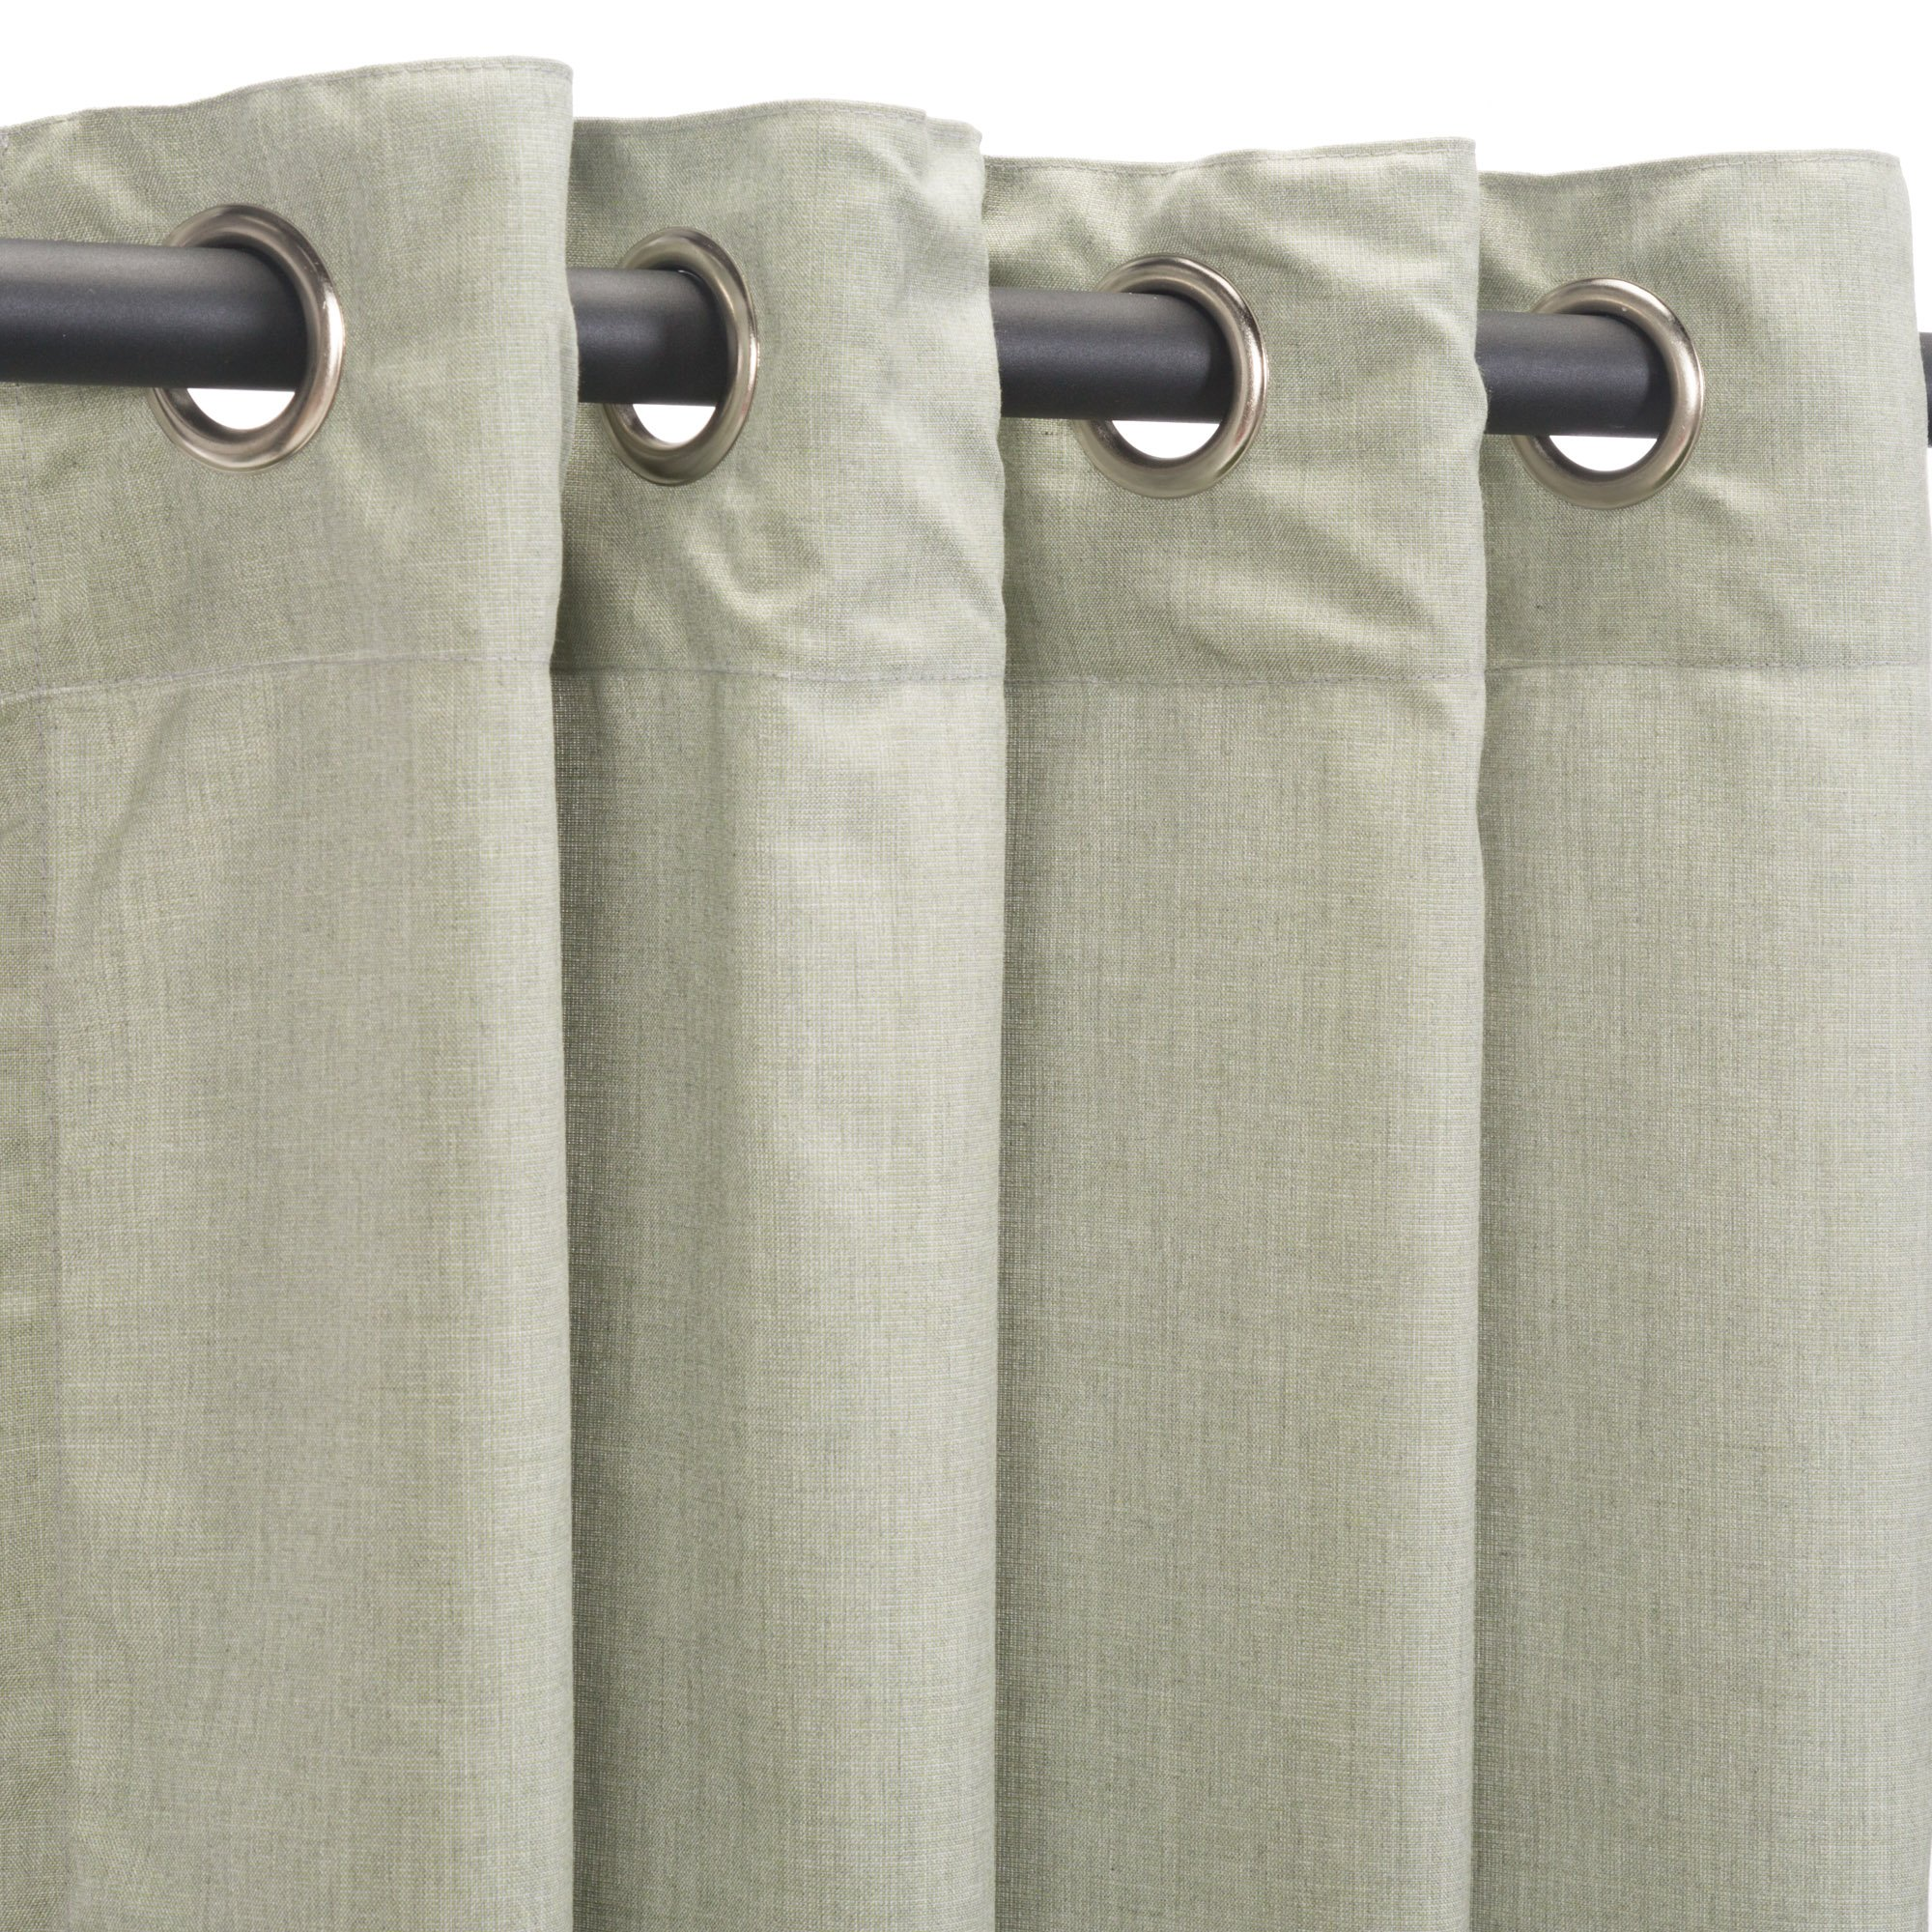 Sunbrella Outdoor Curtain Panel, Nickel Grommet Top, 50 by 96 Inch, Cast Oasis (Available in Multiple Colors and Sizes) Includes Custom Storage Bag; Perfect For a Patio, Porch, Gazebo, or Pergola